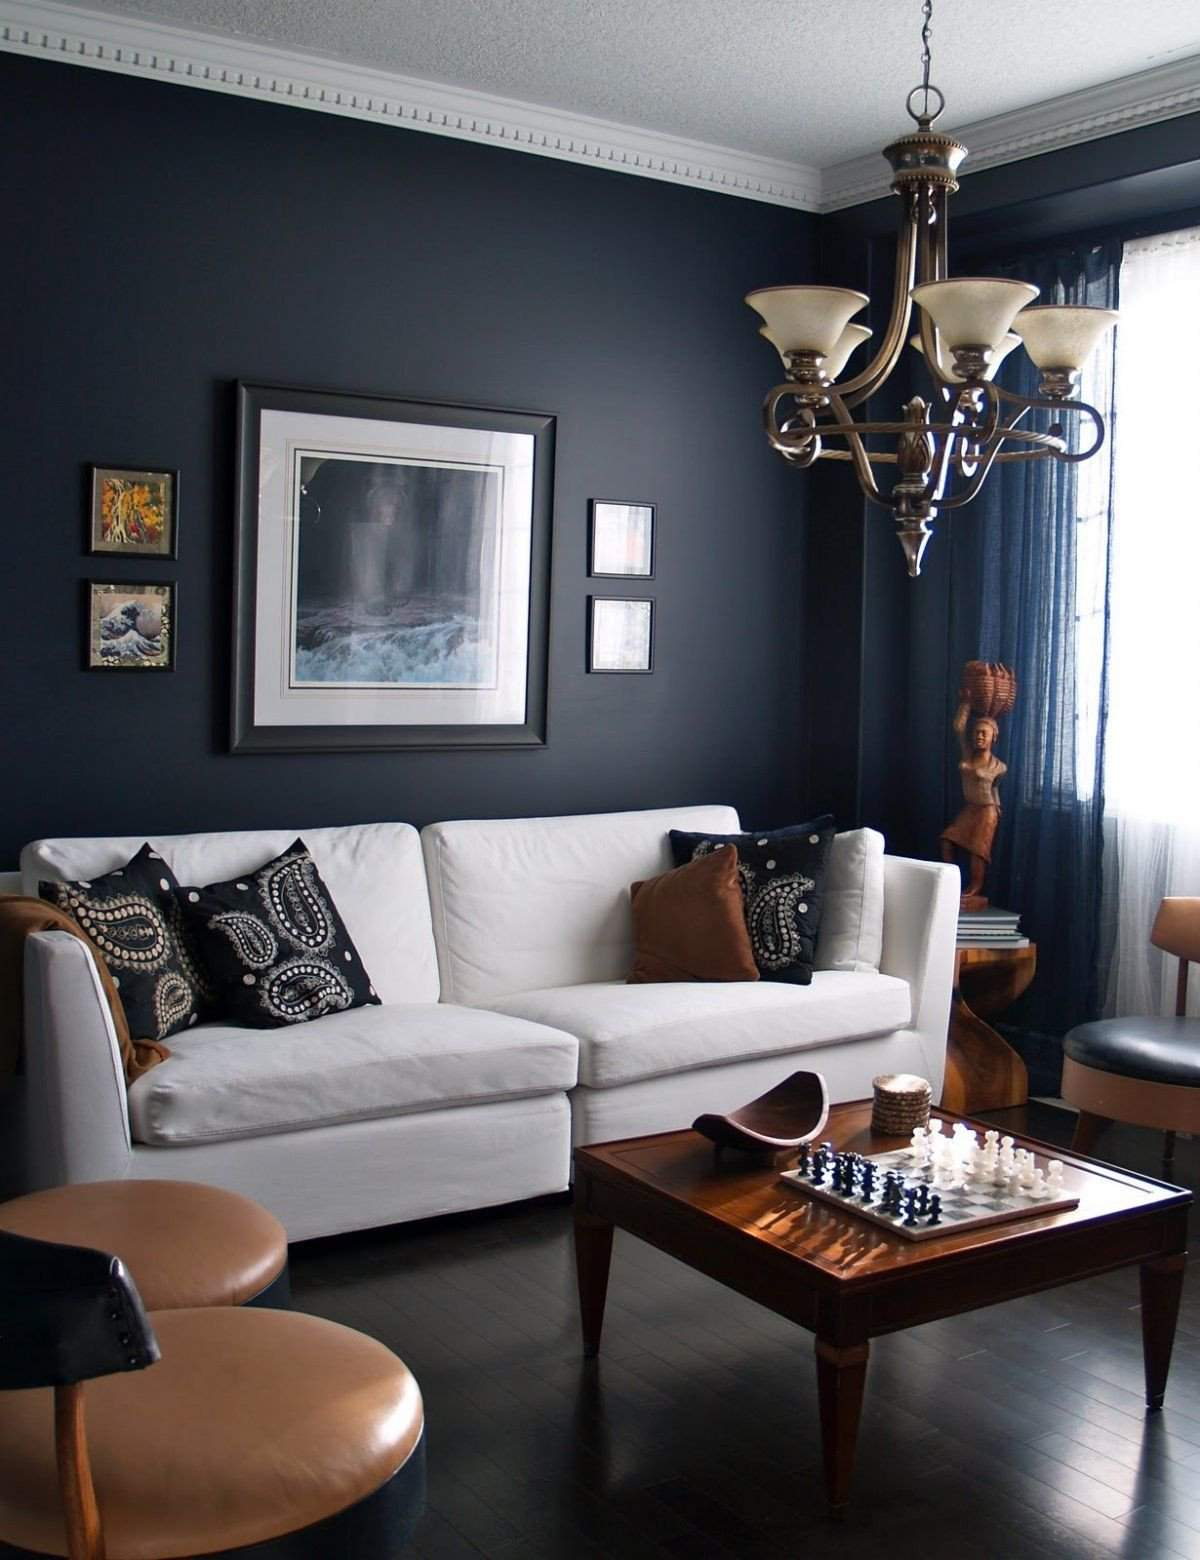 brown living room ideas awesome 15 beautiful dark blue wall design ideas of brown living room ideas